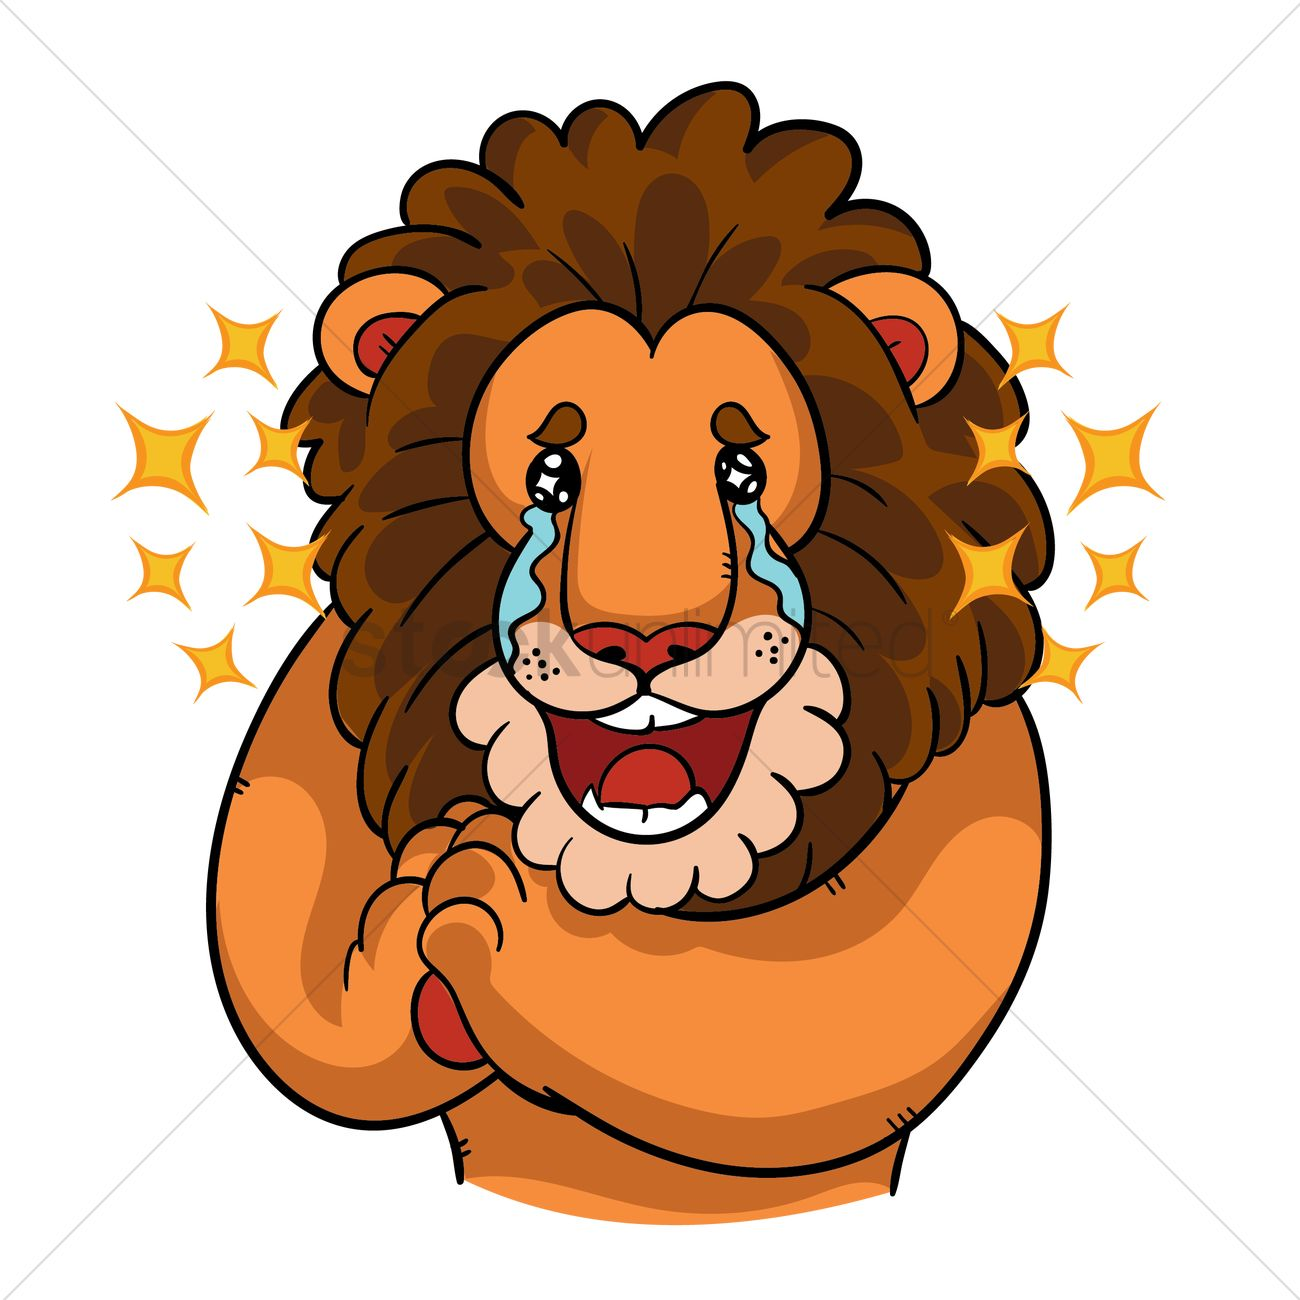 cartoon lion with tears of joy vector image 1957589 stockunlimited